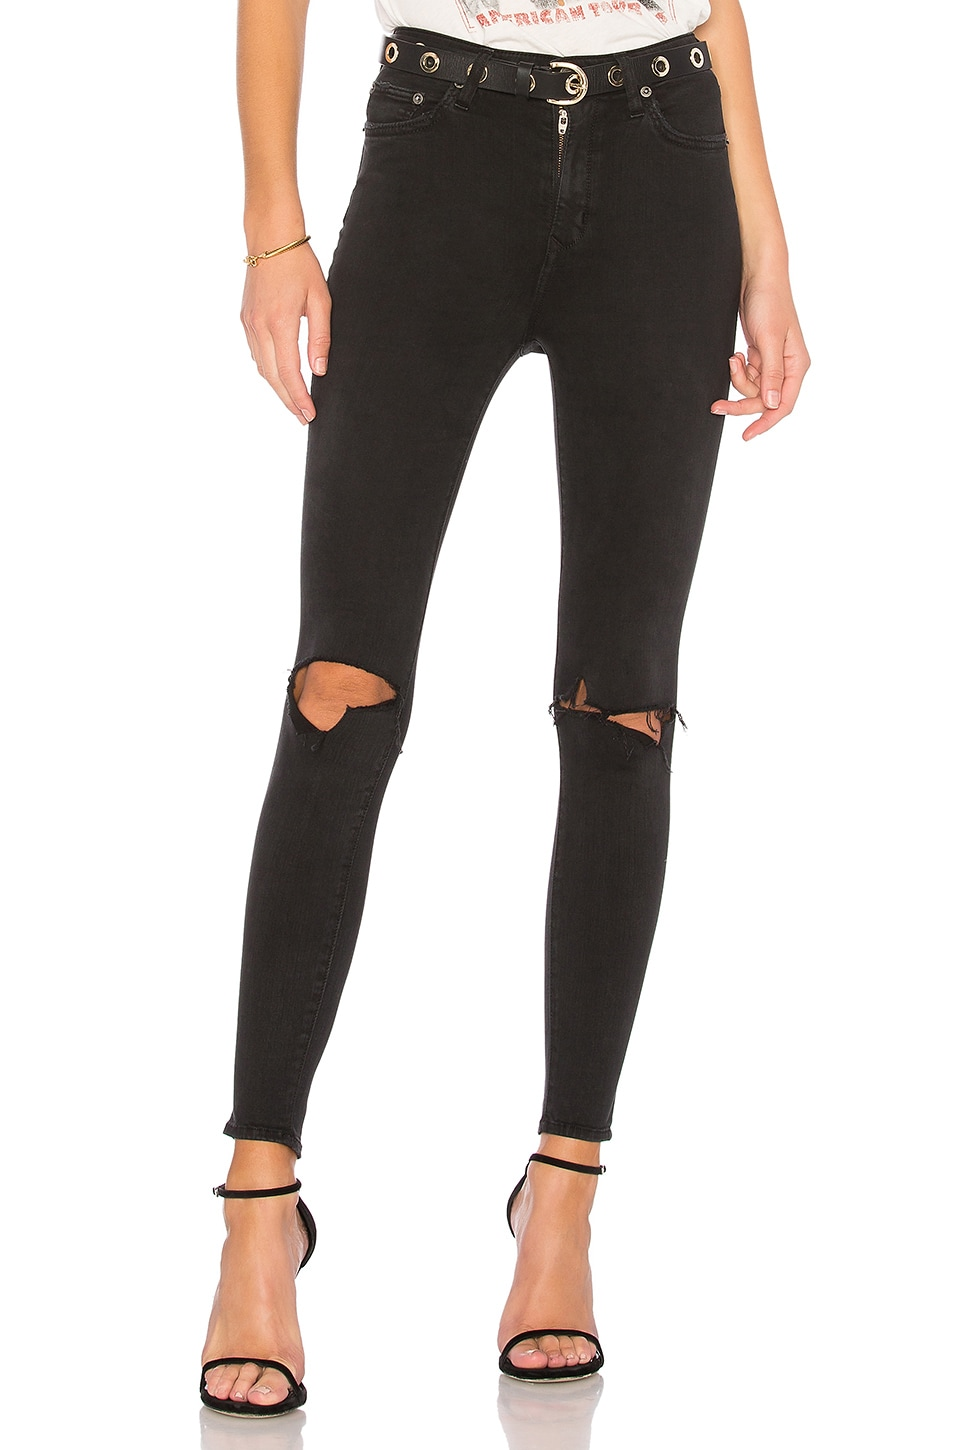 Lovers + Friends Mason High-Rise Skinny Jean in Mabrey